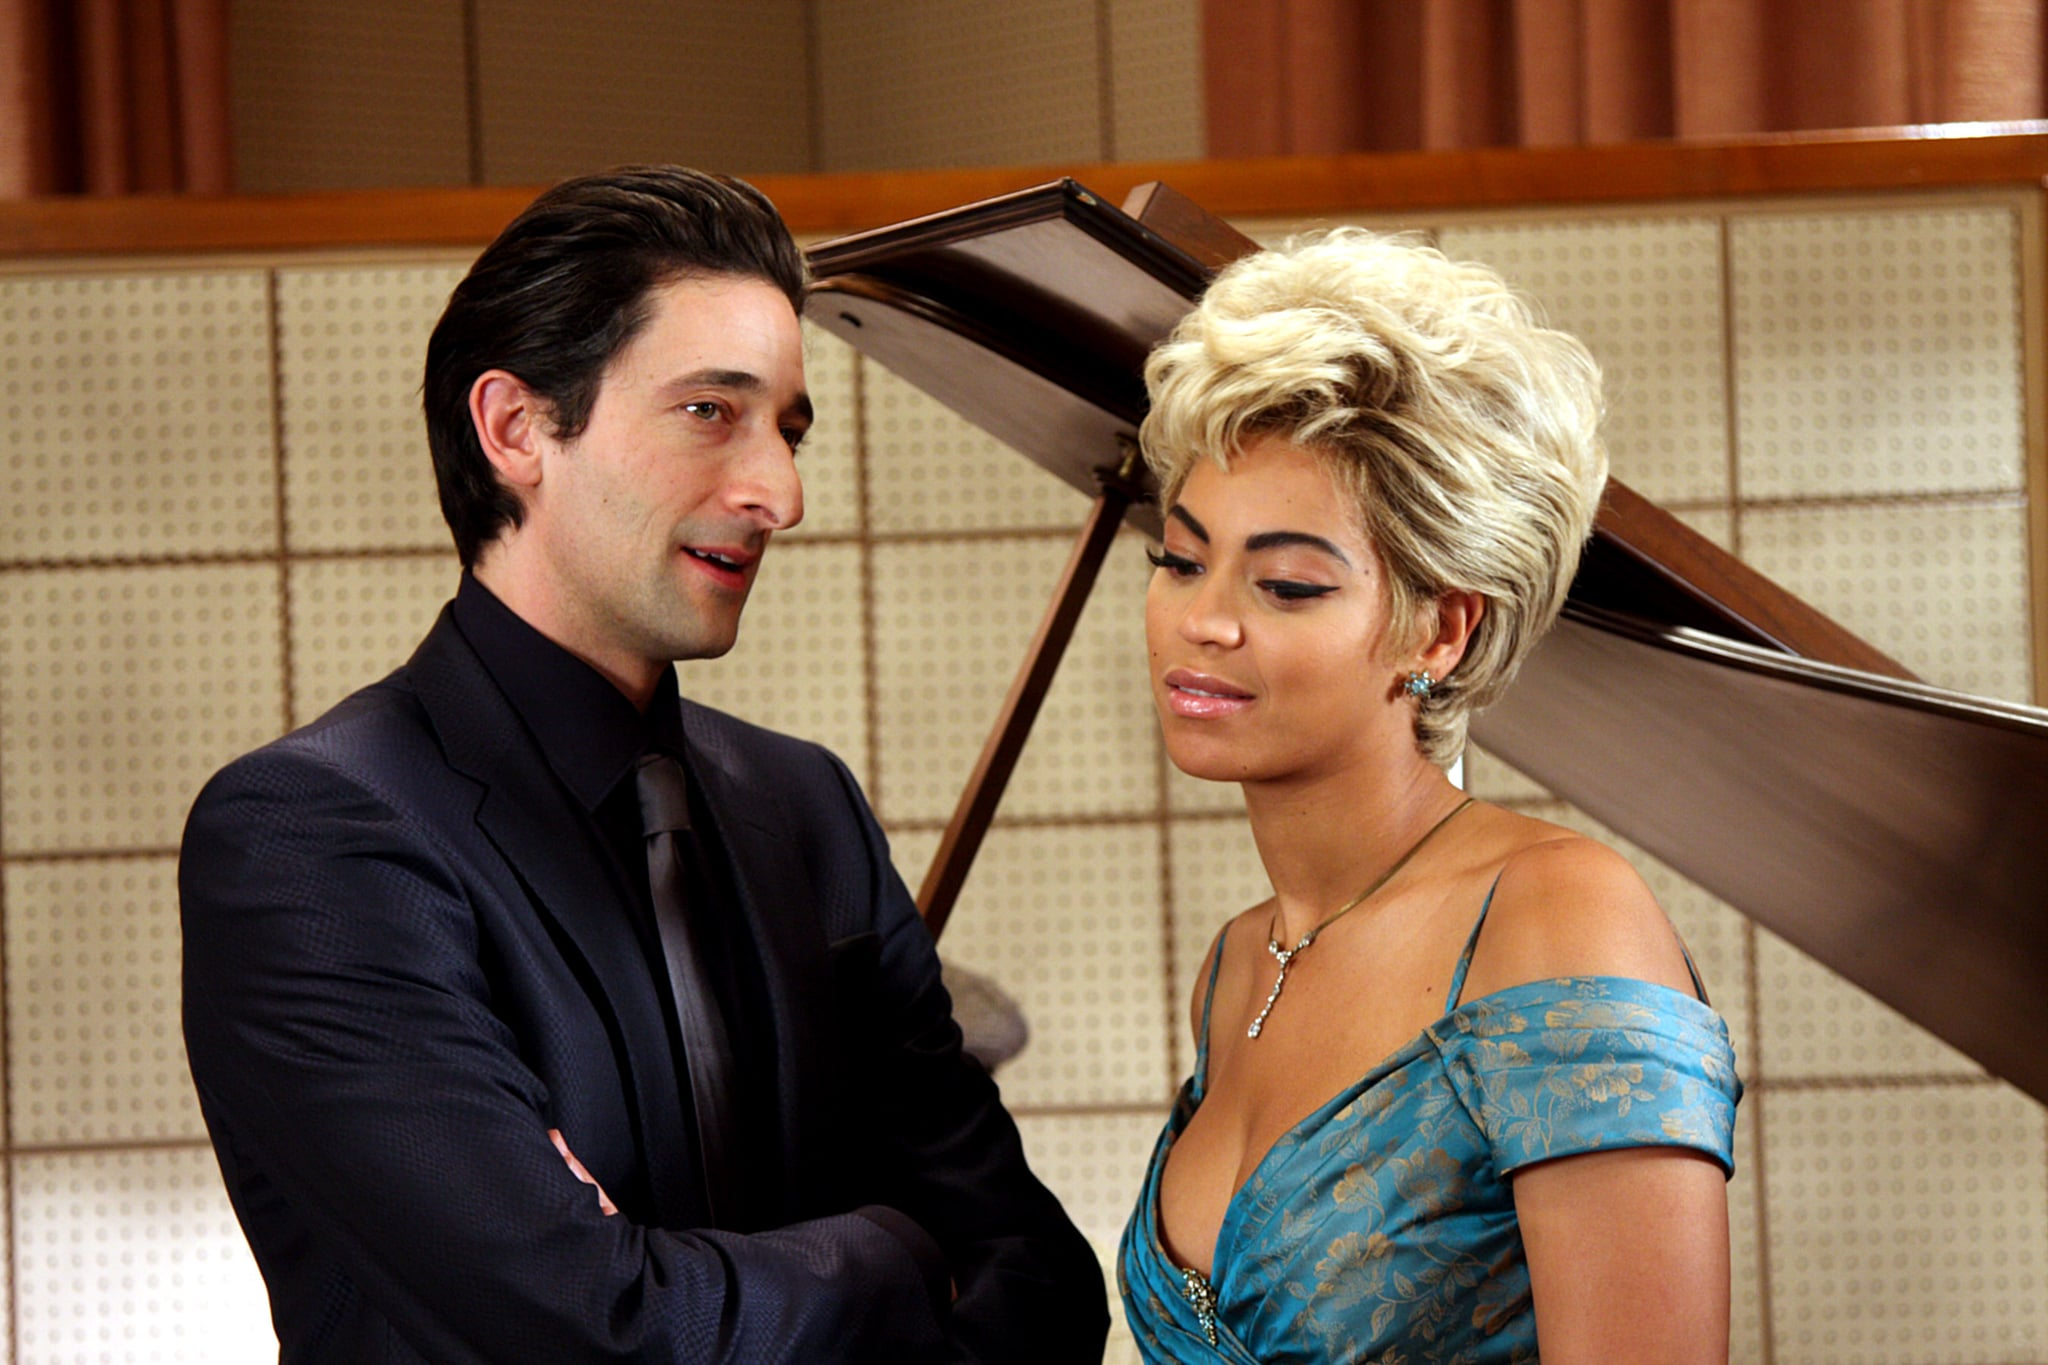 Adrien Brody and Beyonce